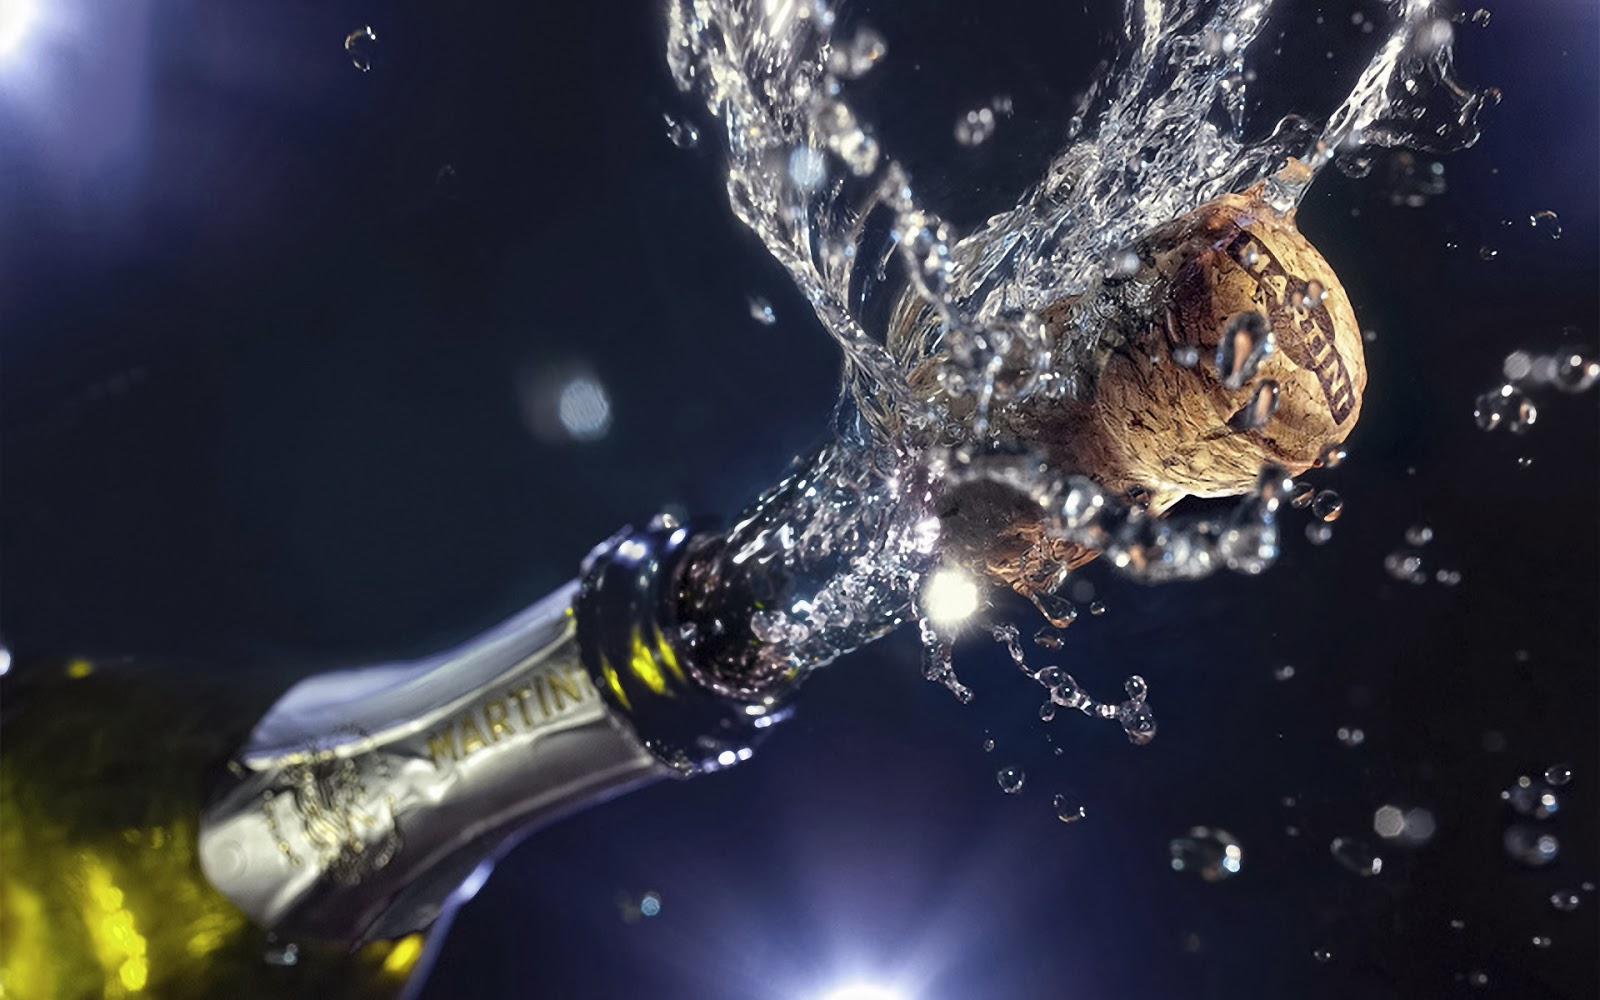 S Hd Image Wallpaper: Sparkling Champagne HD Wallpapers